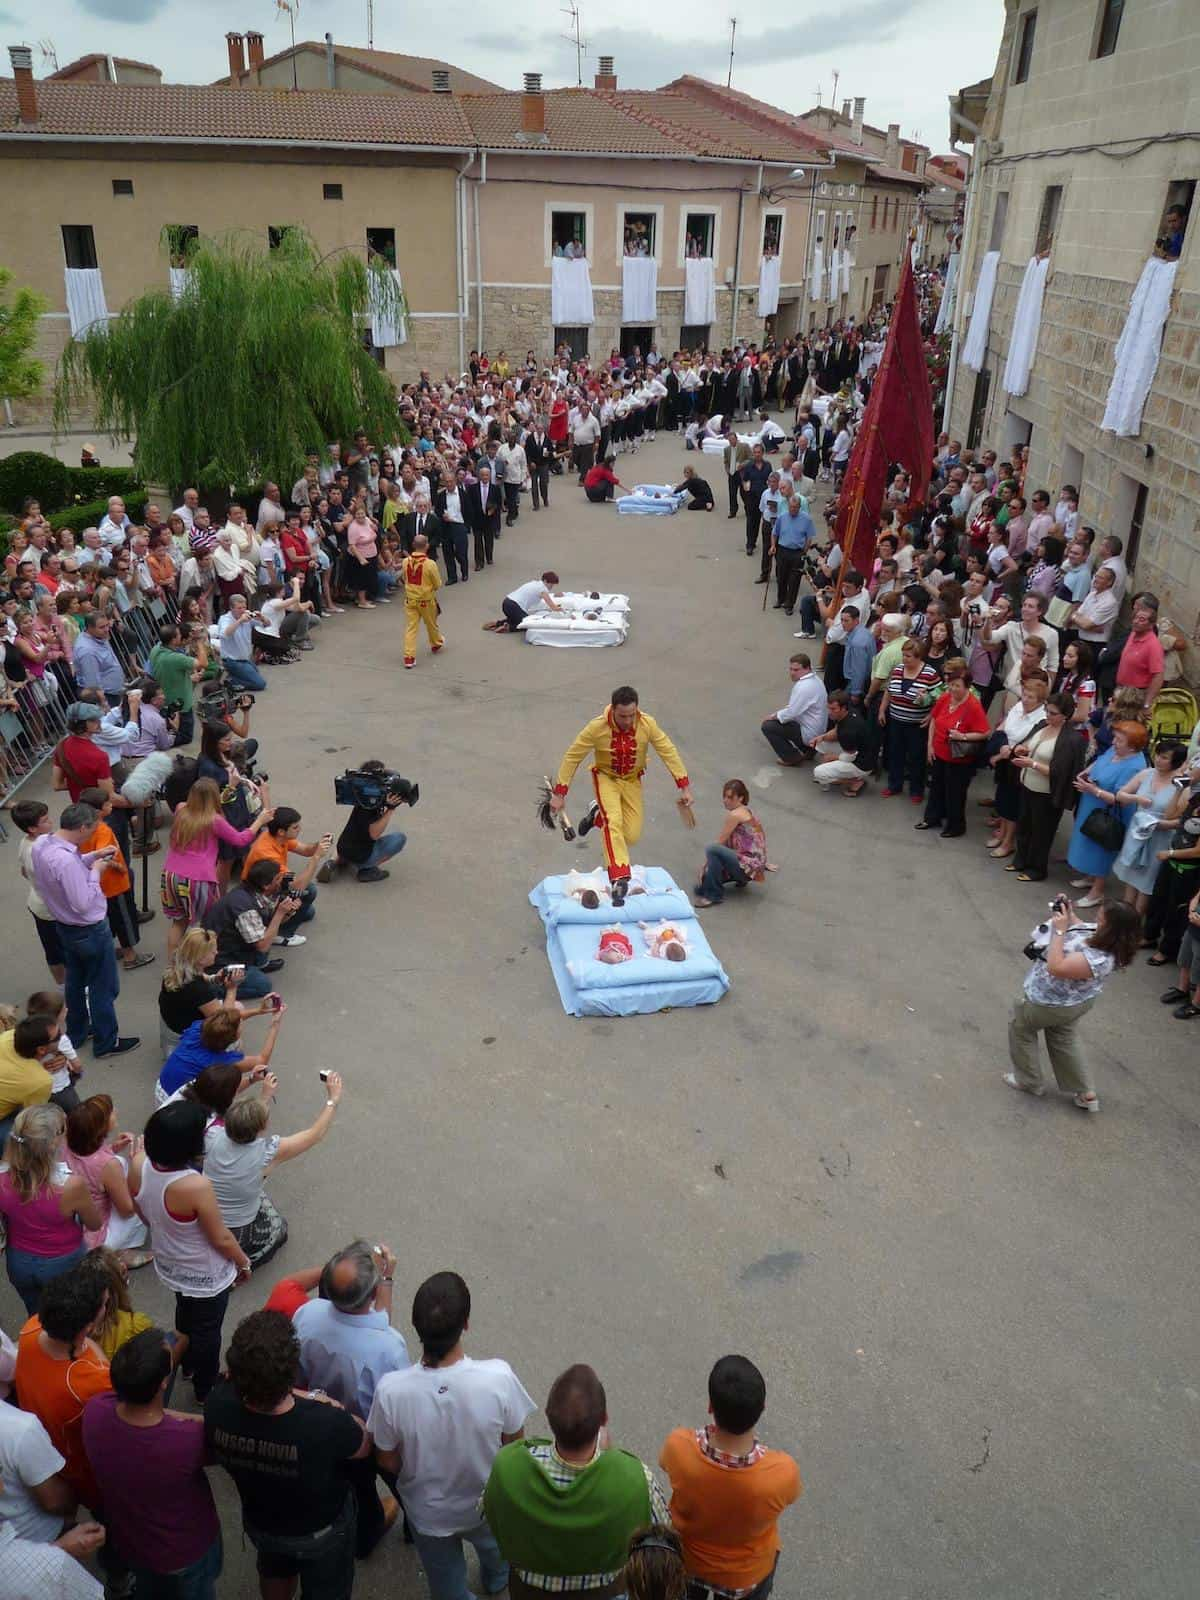 Costumed men jumping over babies laid on mattresses in a village street in Spain